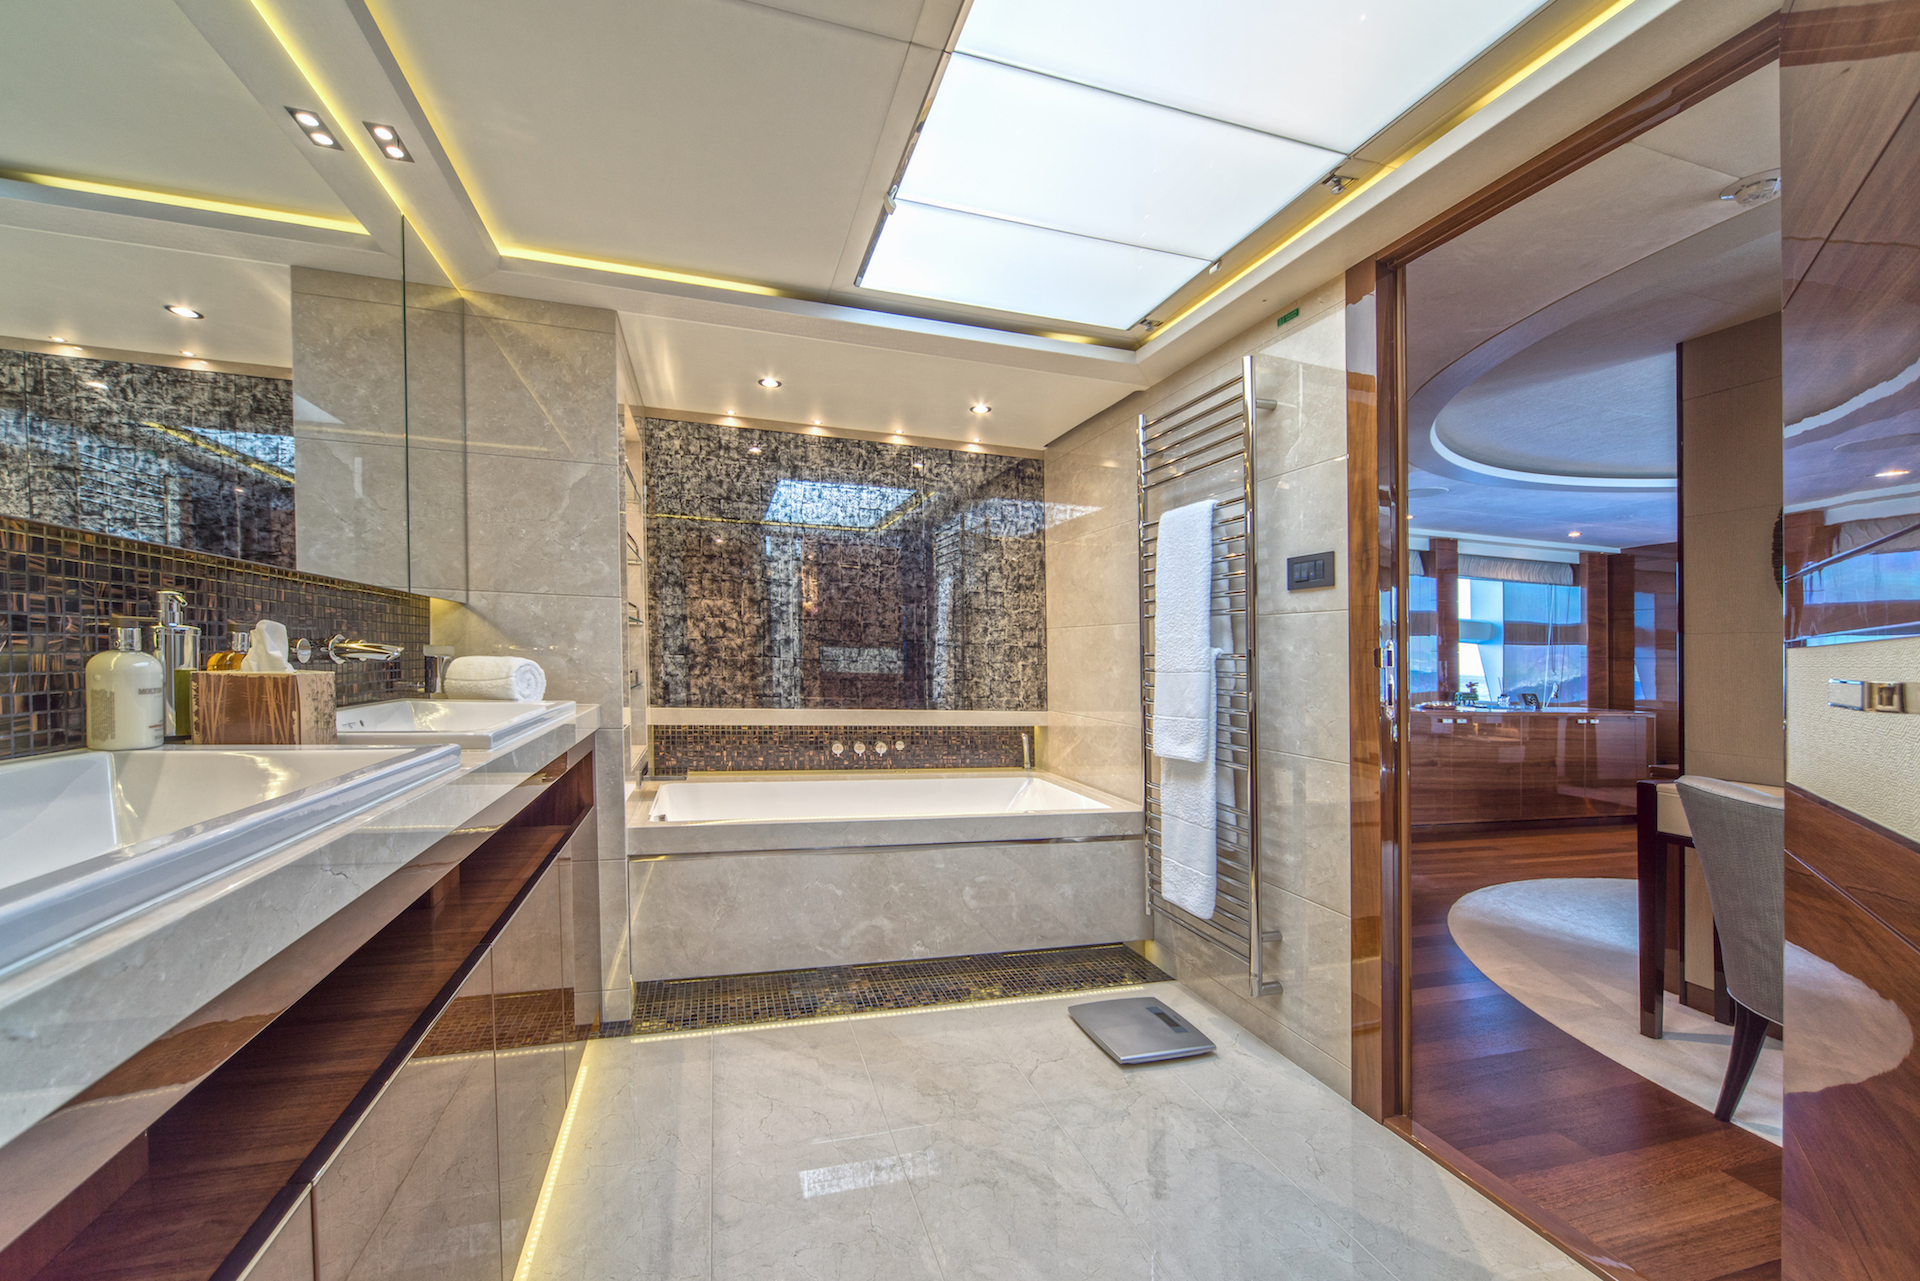 Remarkable journey of exciting new princess 30m superyacht for Masters toilet suites